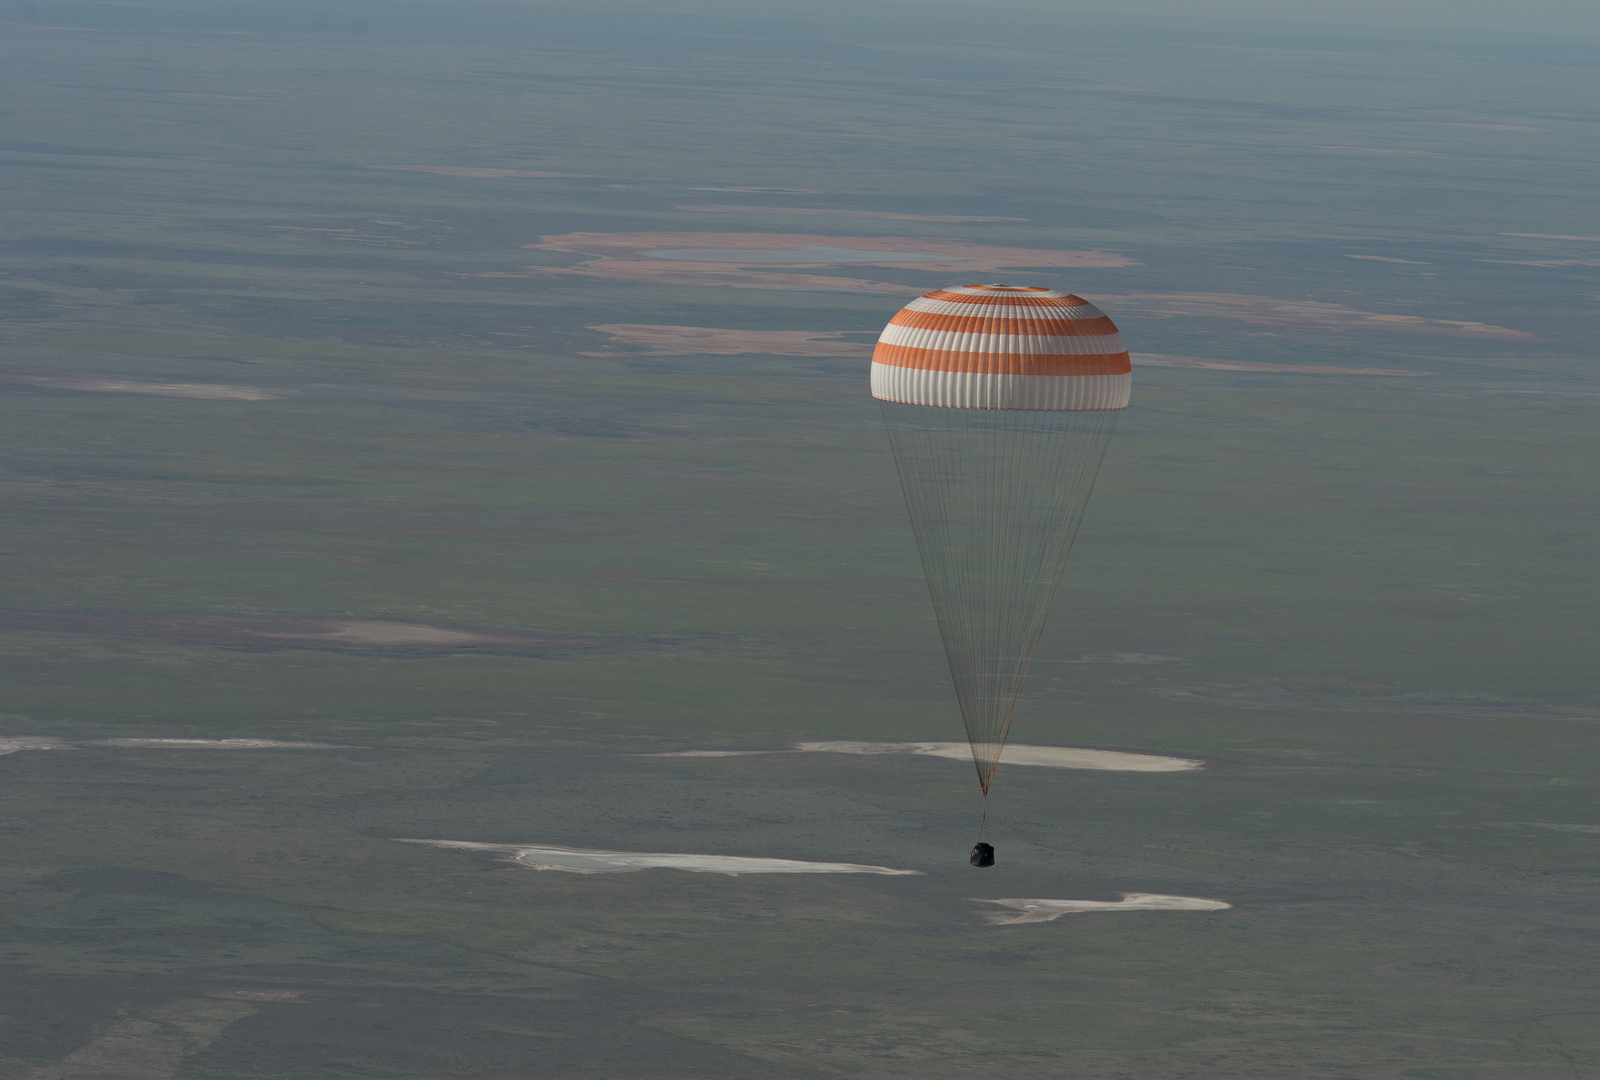 Soyuz TMA-07M Spacecraft Lands Over Kazakhstan